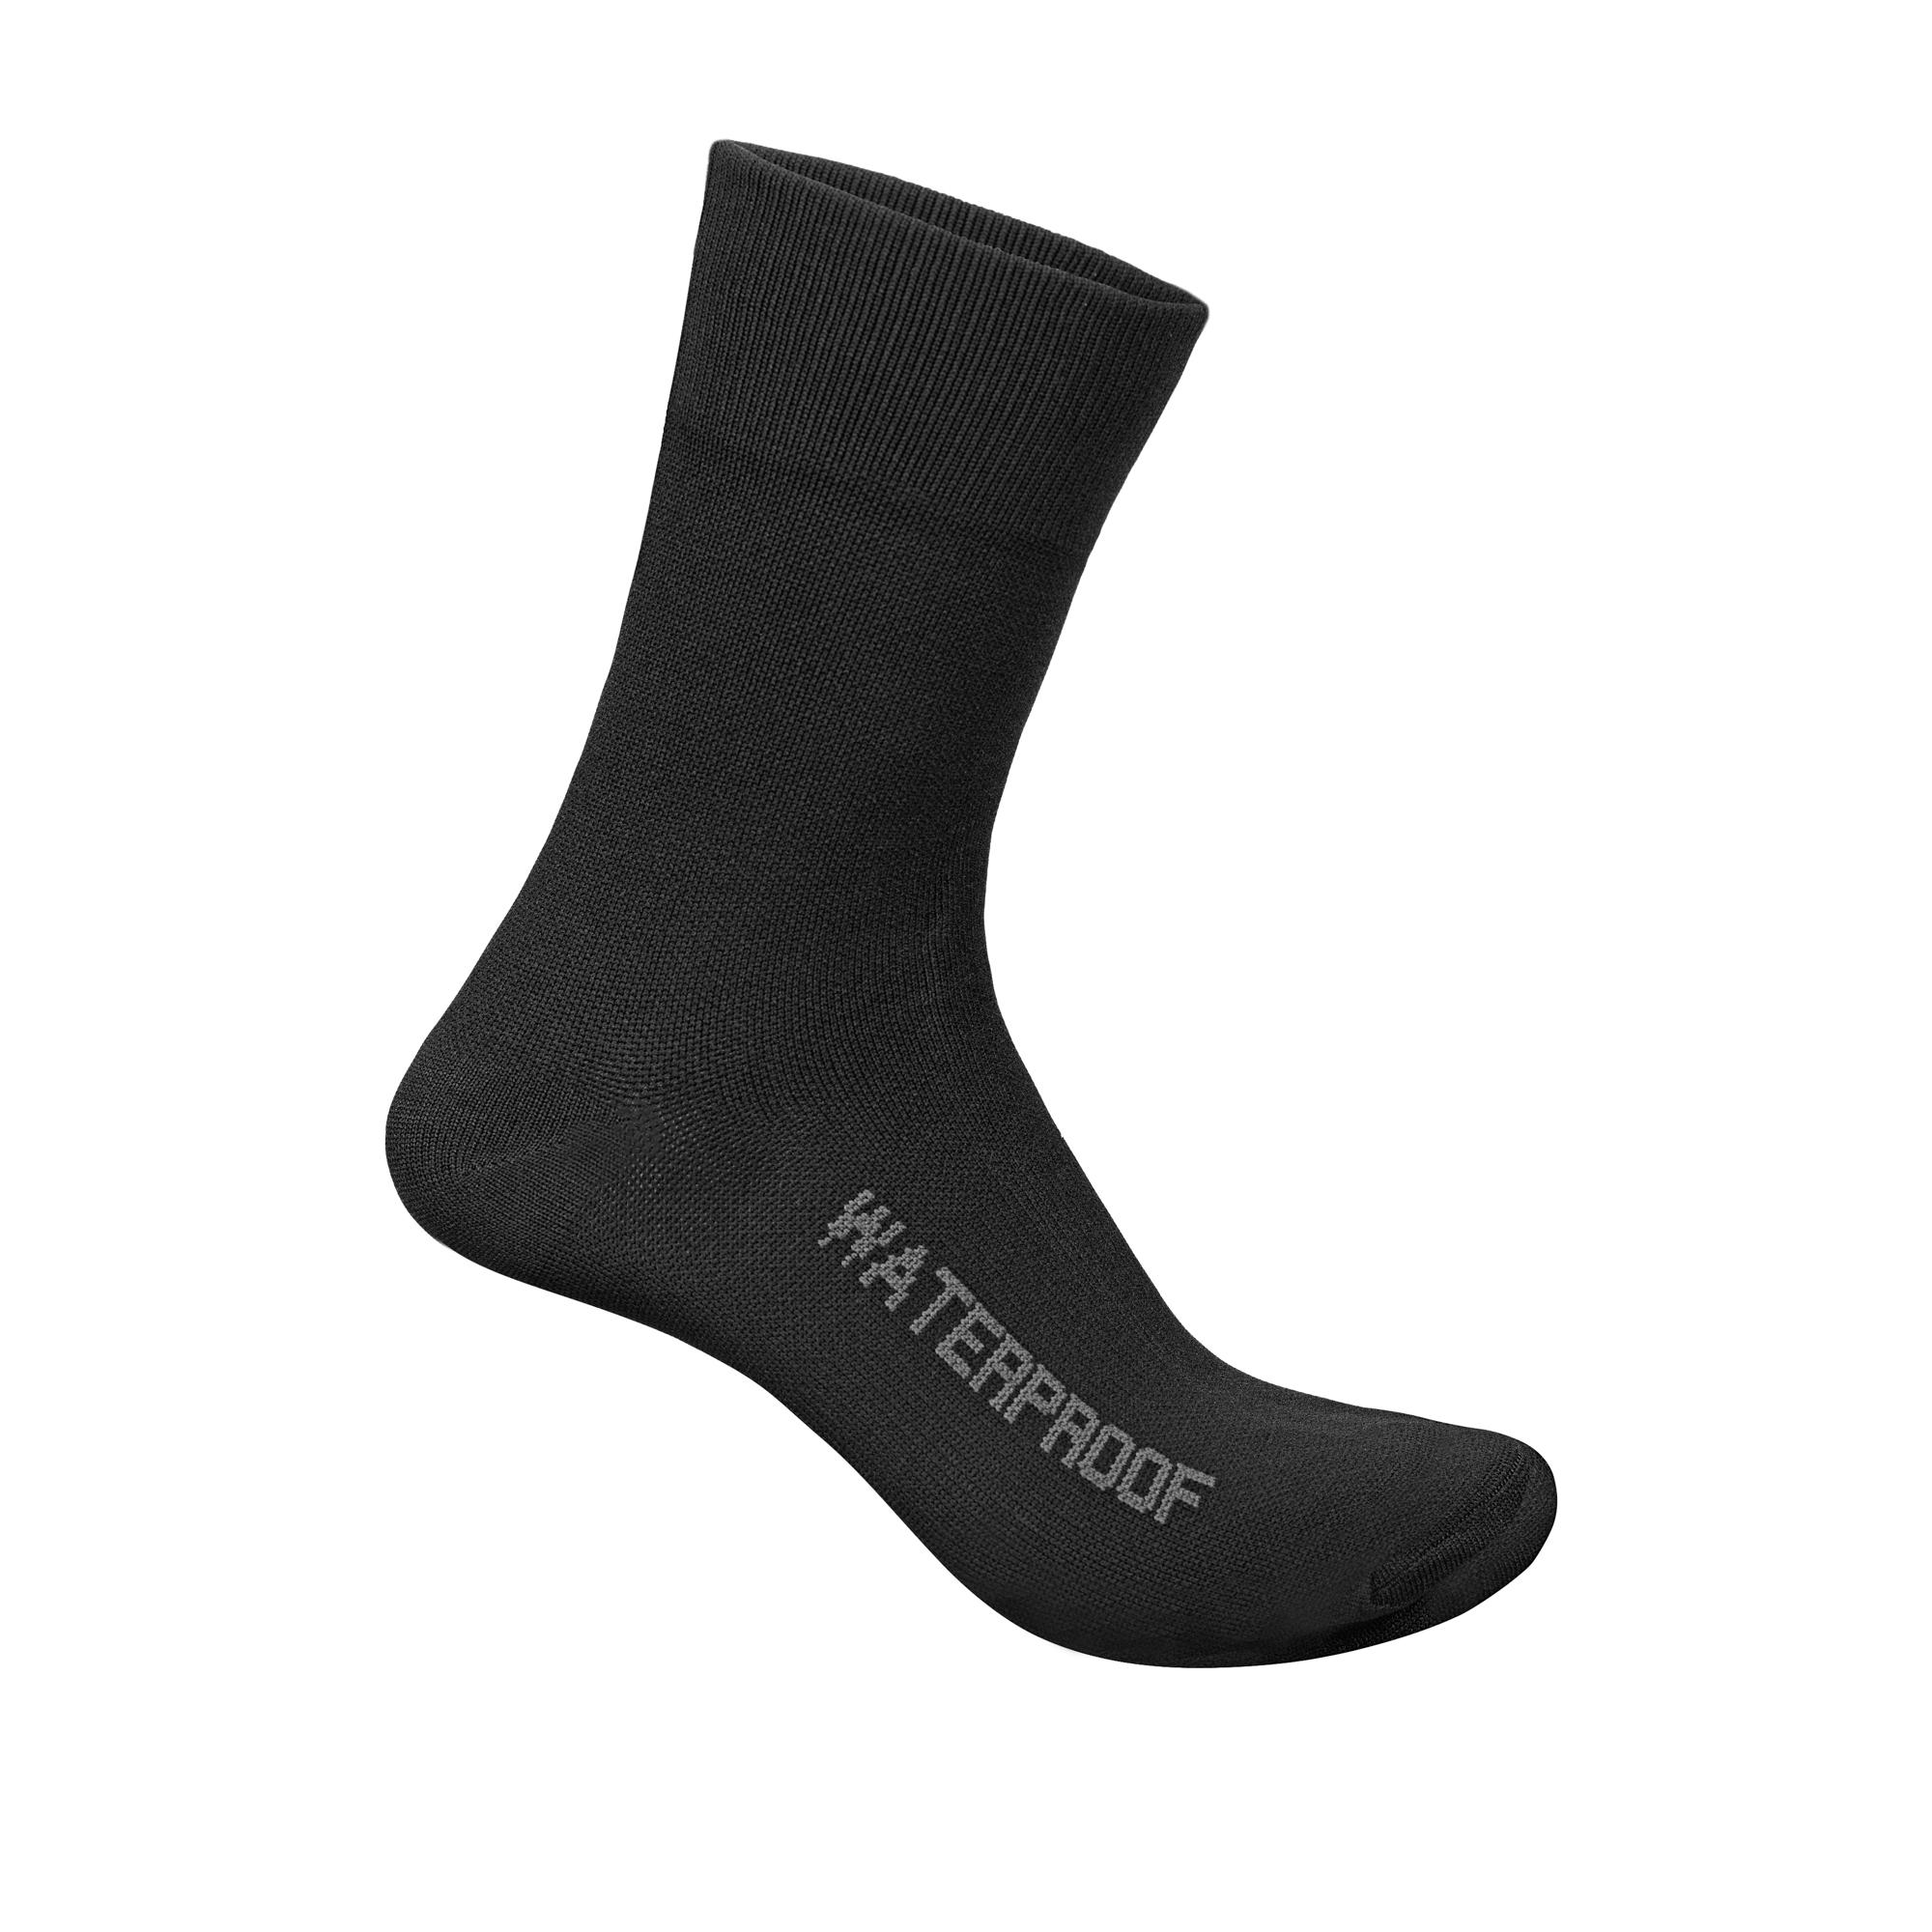 GripGrab Fietssokken Winter Unisex Zwart - Lightweight Waterproof Sock Black